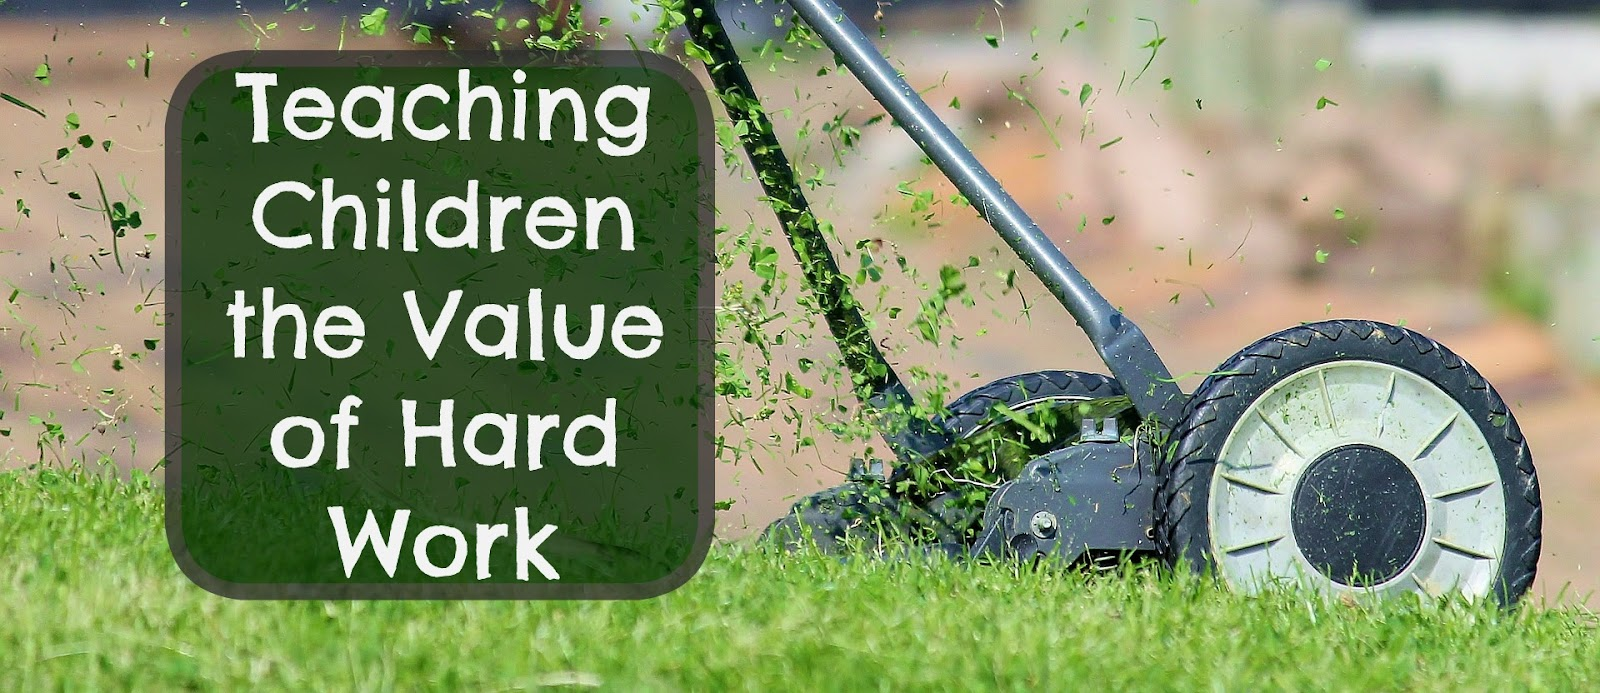 our unschooling journey through life teaching a good work ethic i think the ability to work hard and the satisfaction one gets from knowing a job has been well done are valuable life skills that will take them far